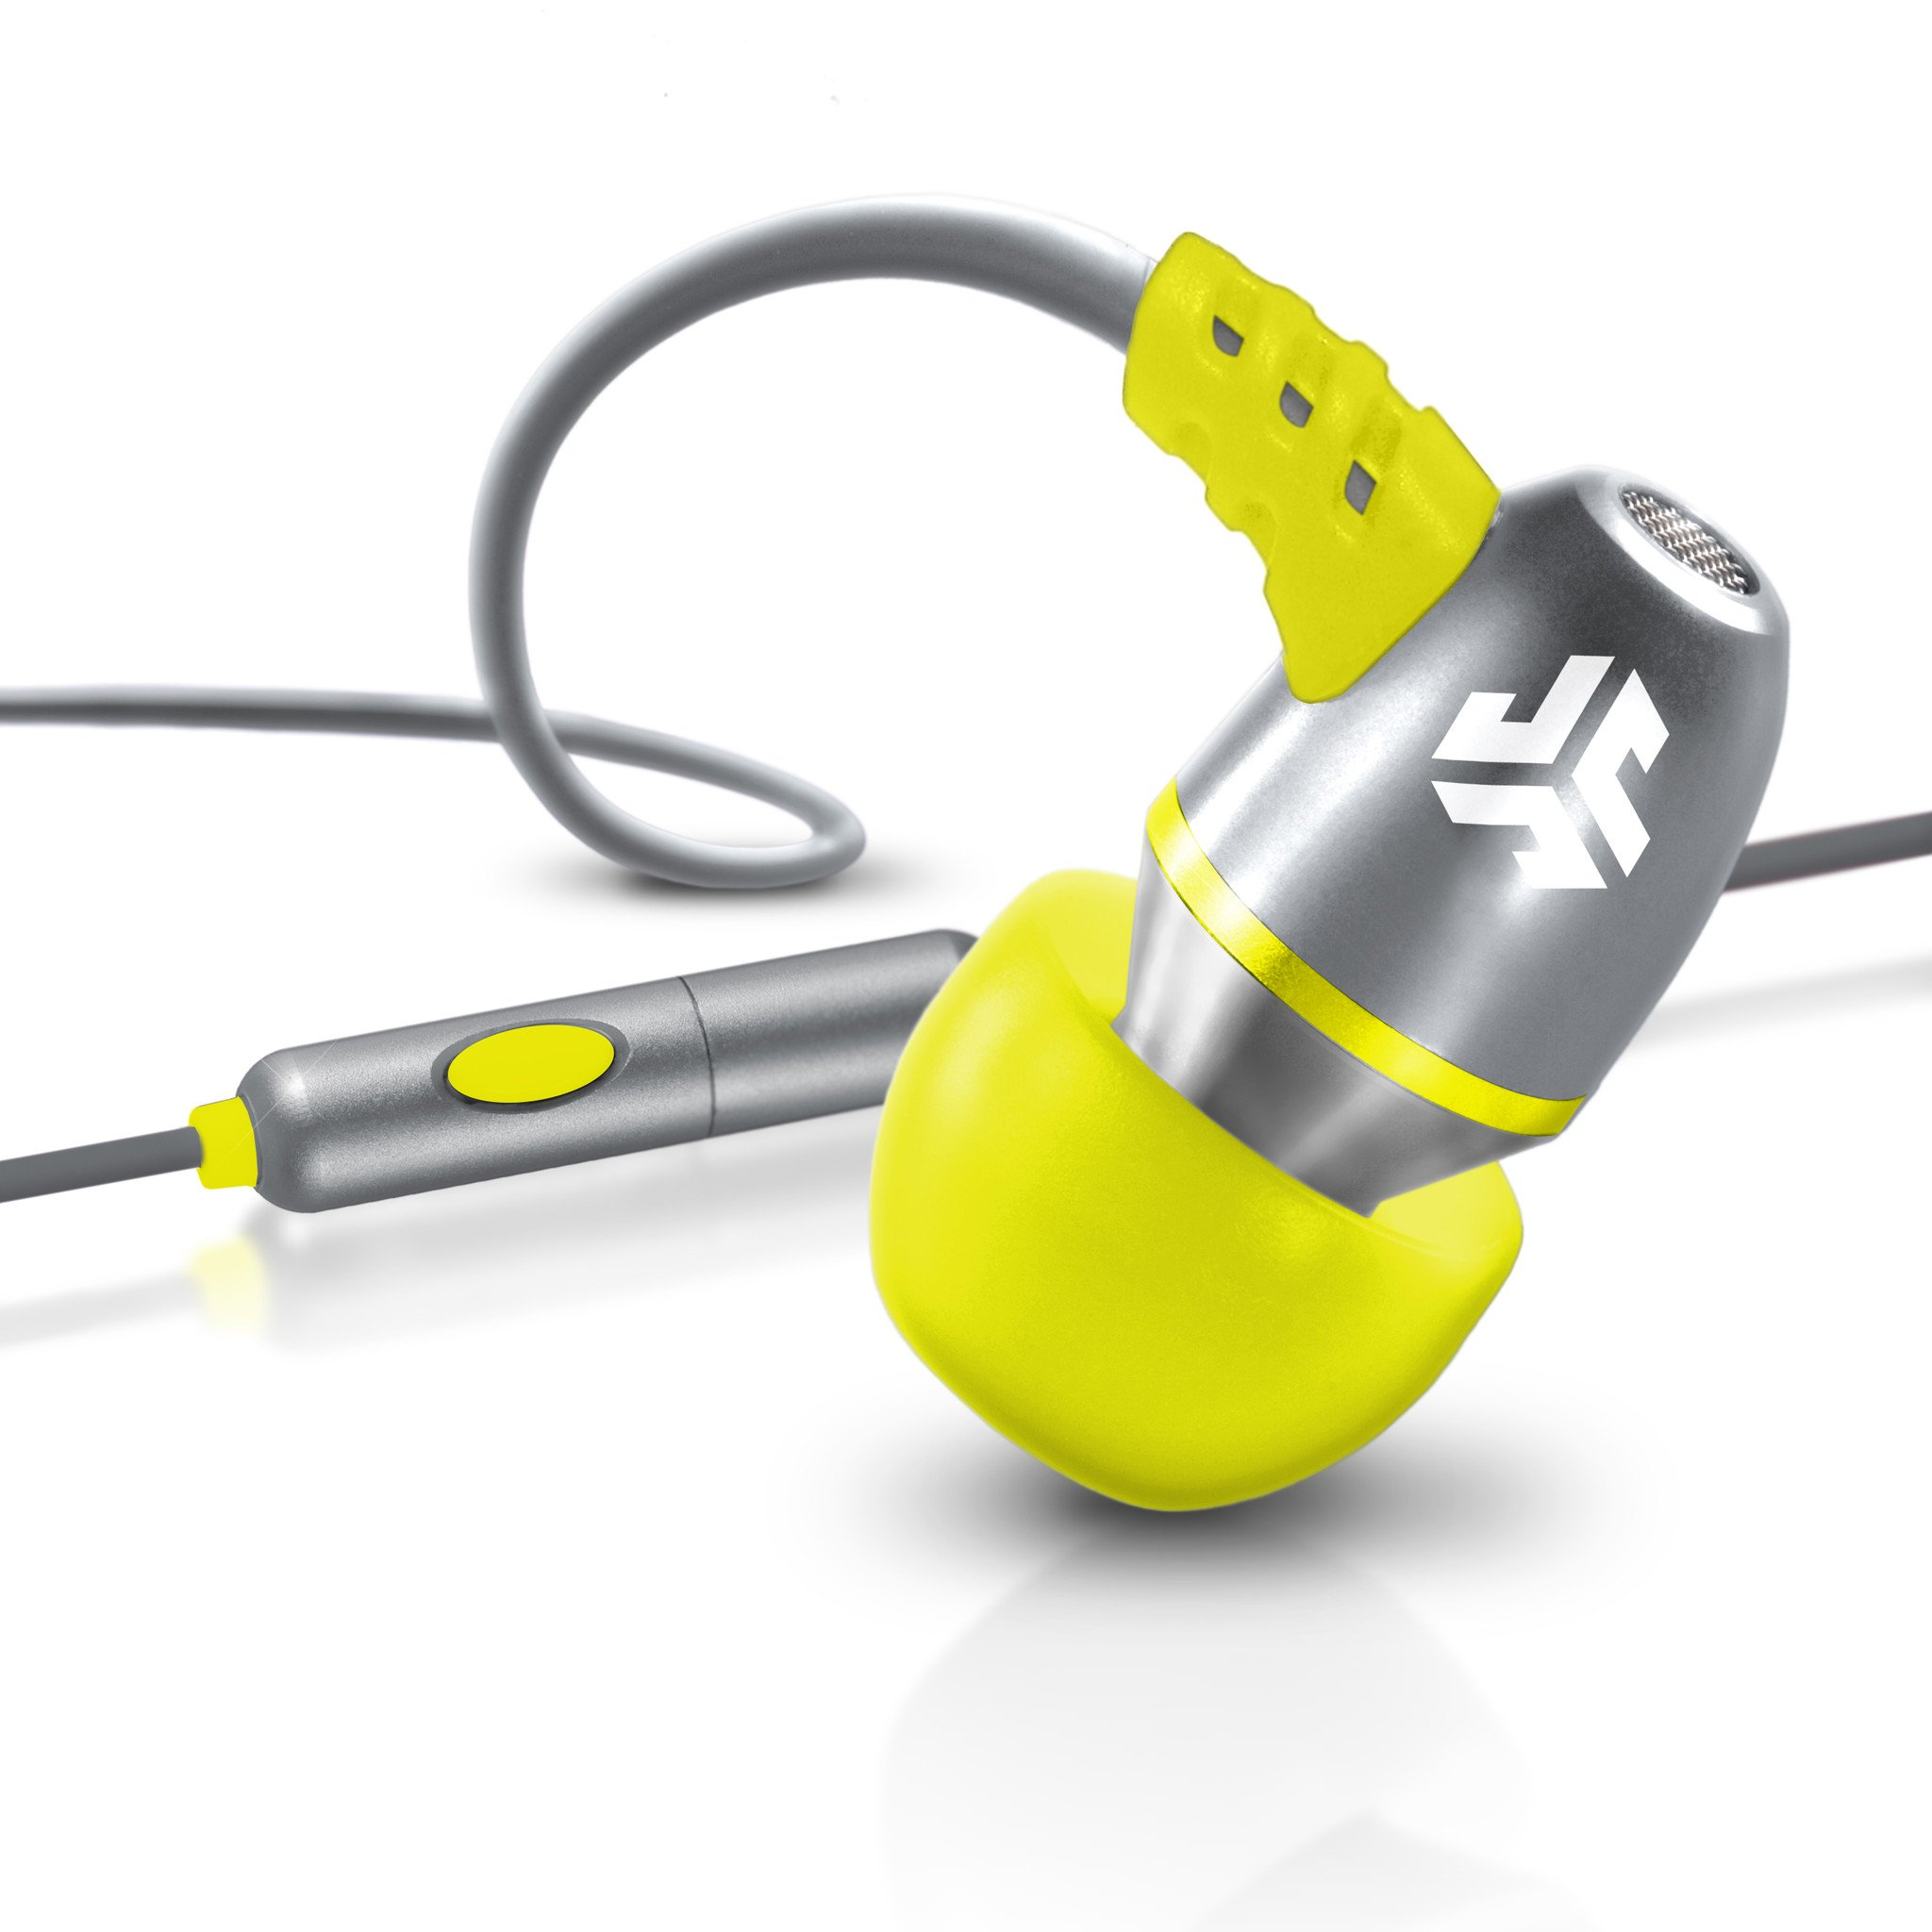 JLab Audio JBuds Metal Earbuds with Microphone - Gray / Yellow